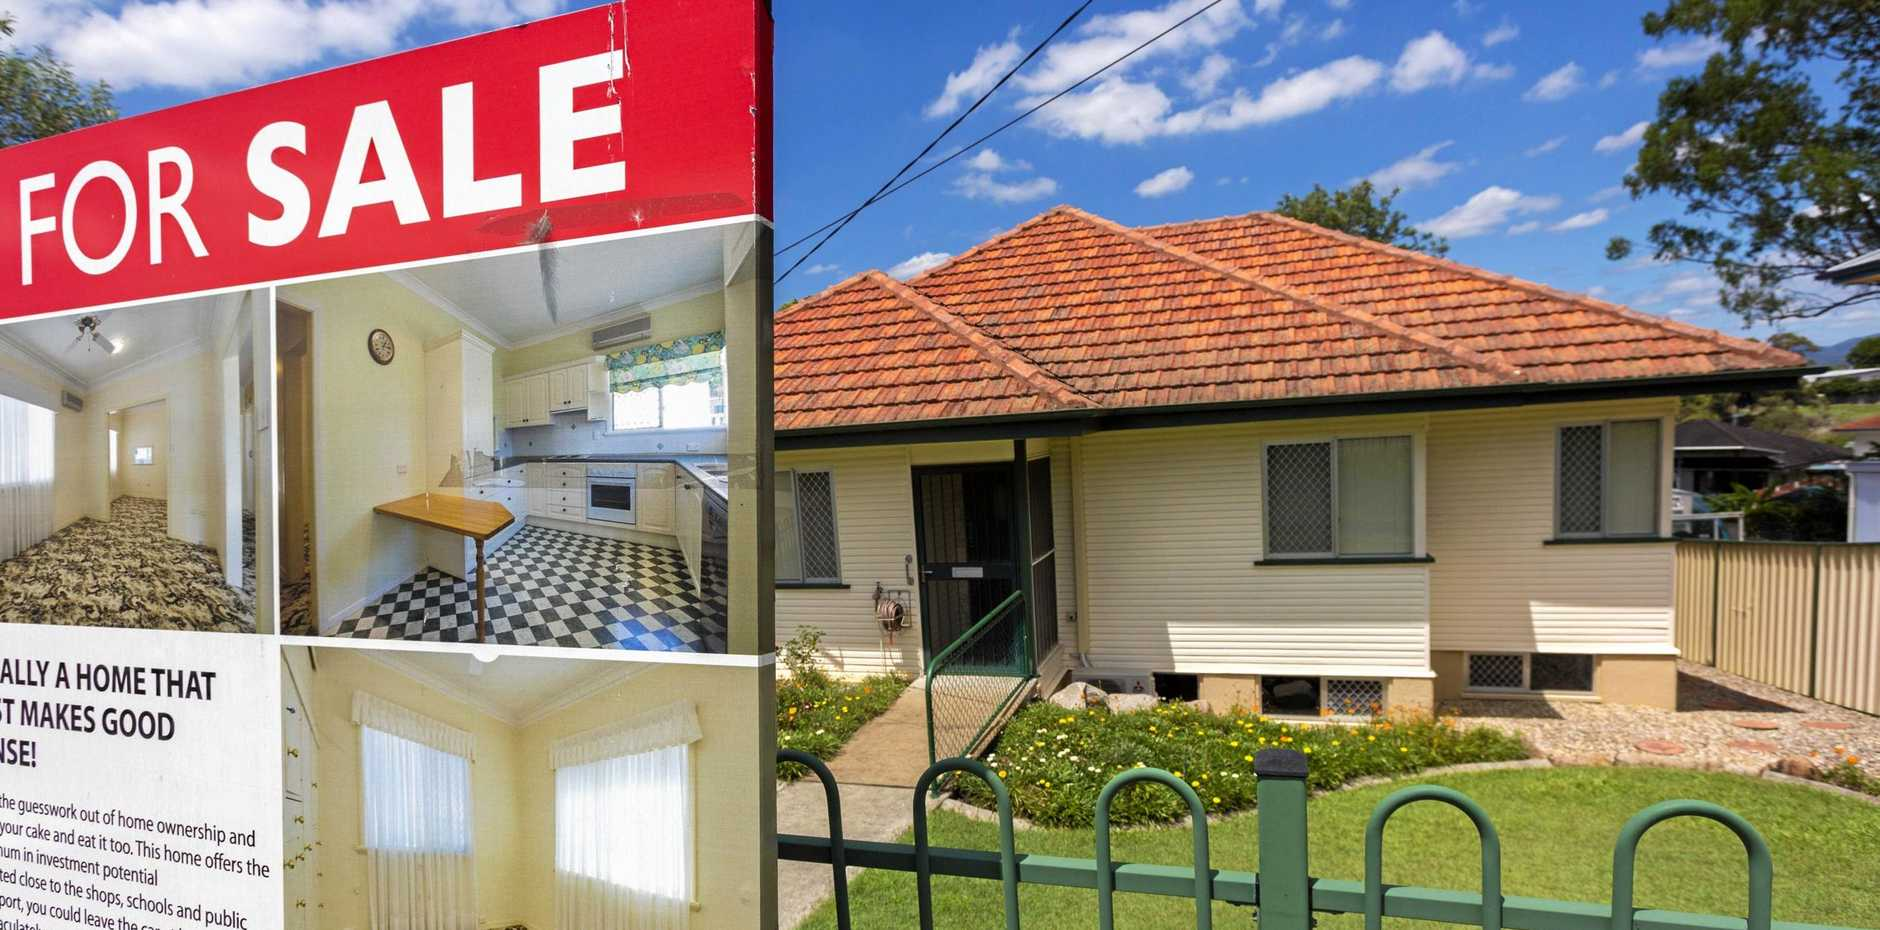 The highest percentage of profitable house sales in Queensland were recorded on the Sunshine Coast in the March 2018 quarter.